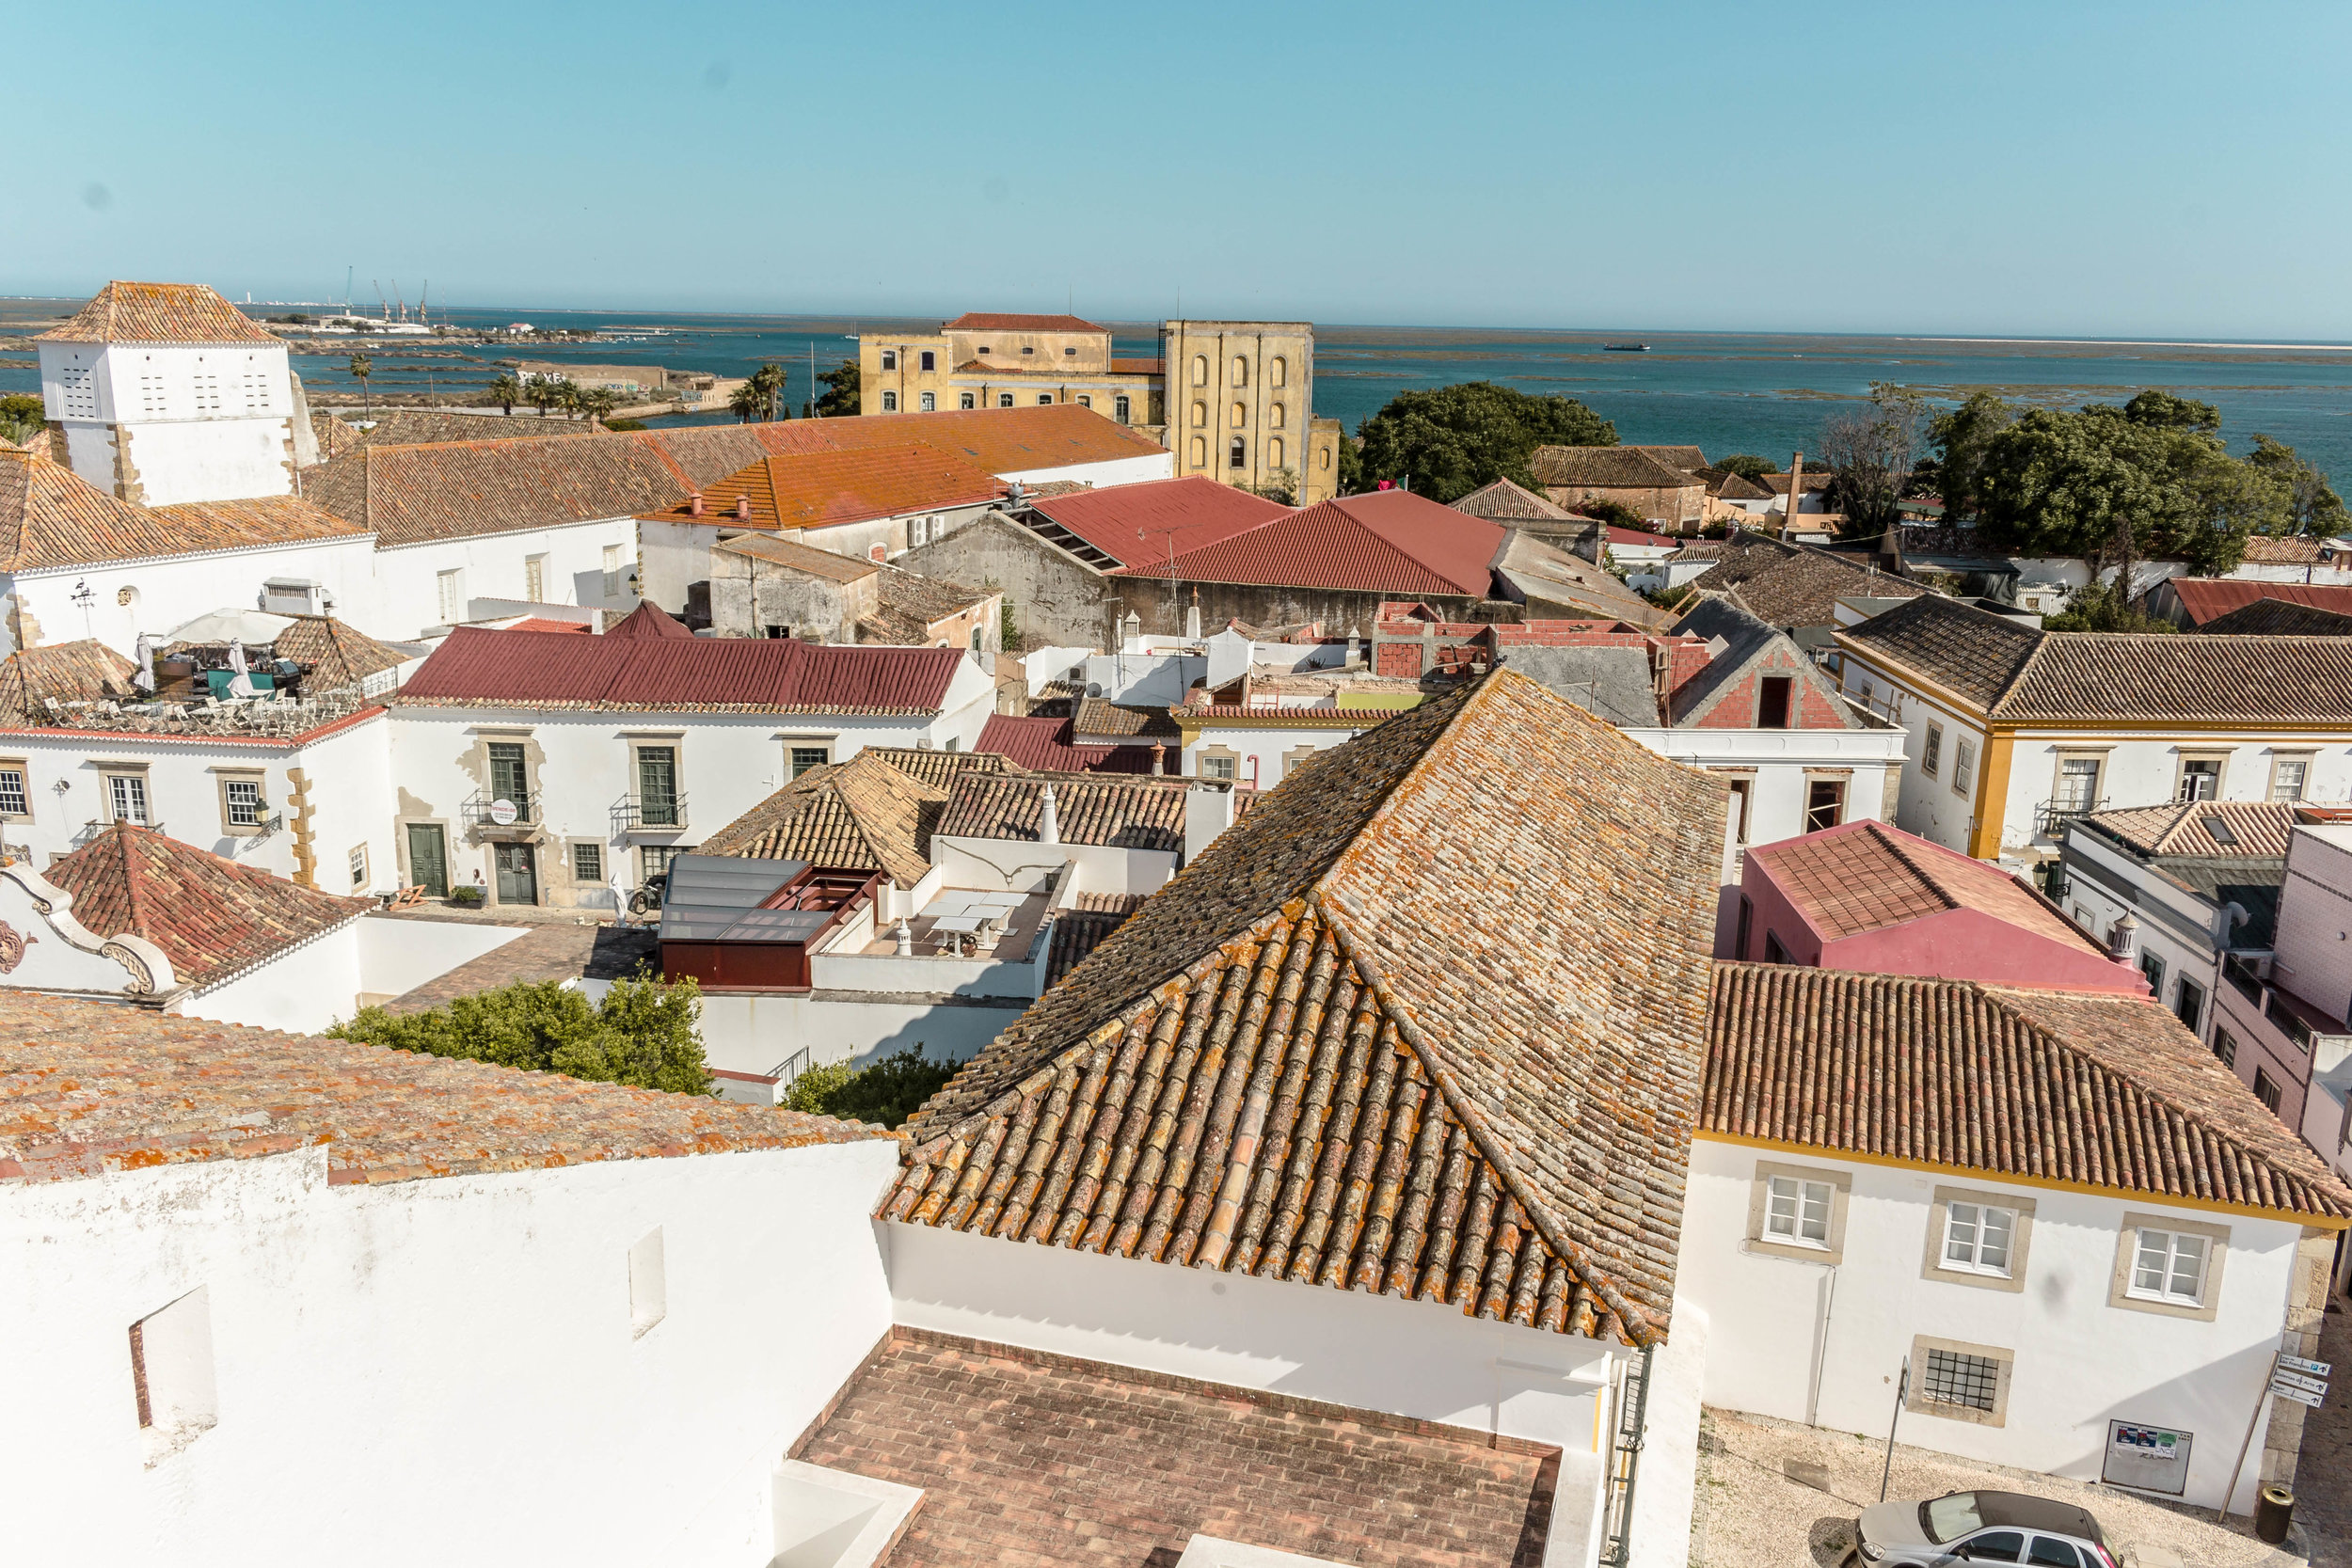 A GUIDE TO FARO, PORTUGAL: WHERE TO EAT + WHAT TO SEE